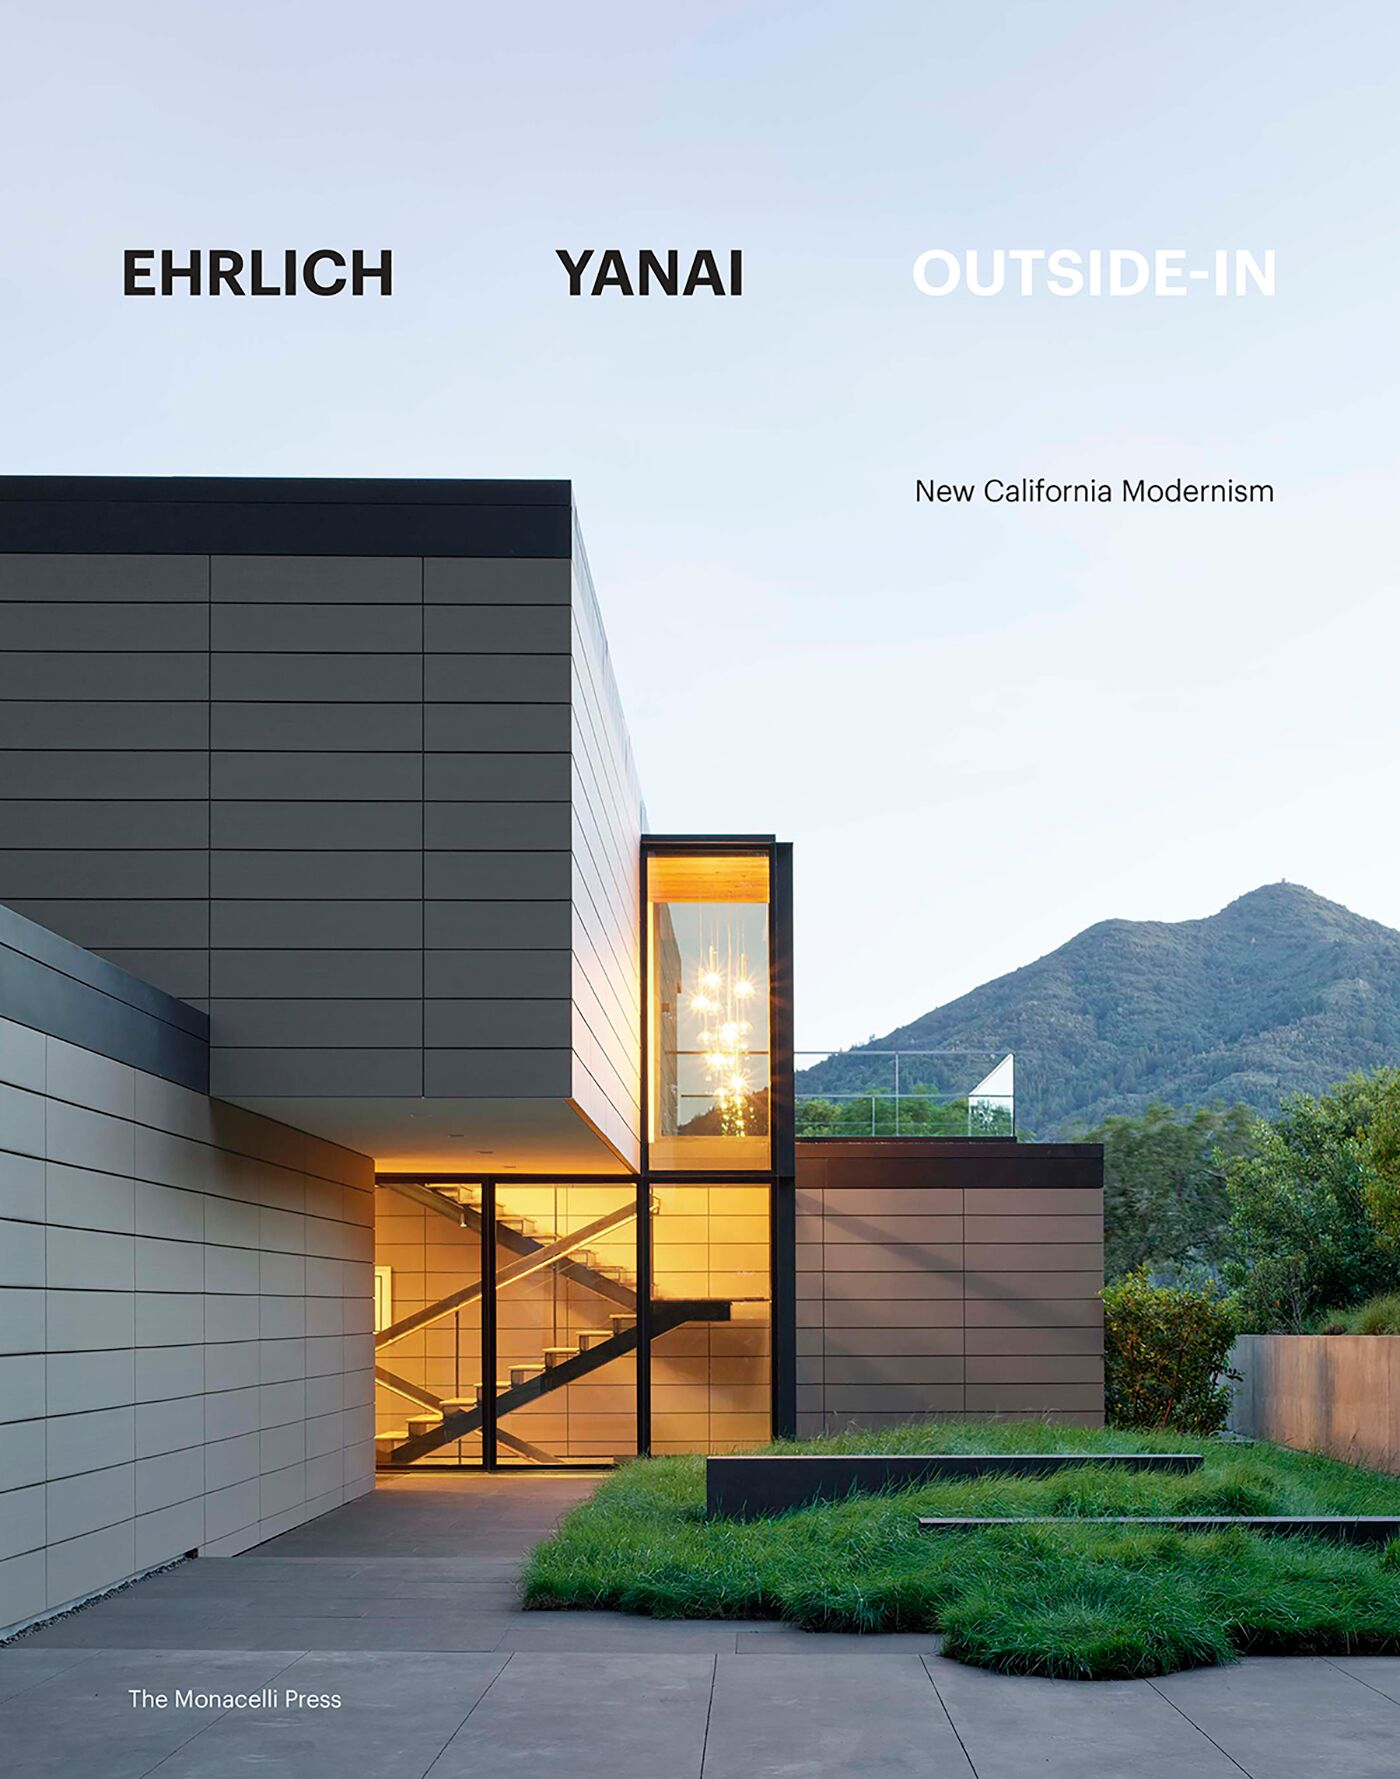 Outside-In, Ehrlich Yanai